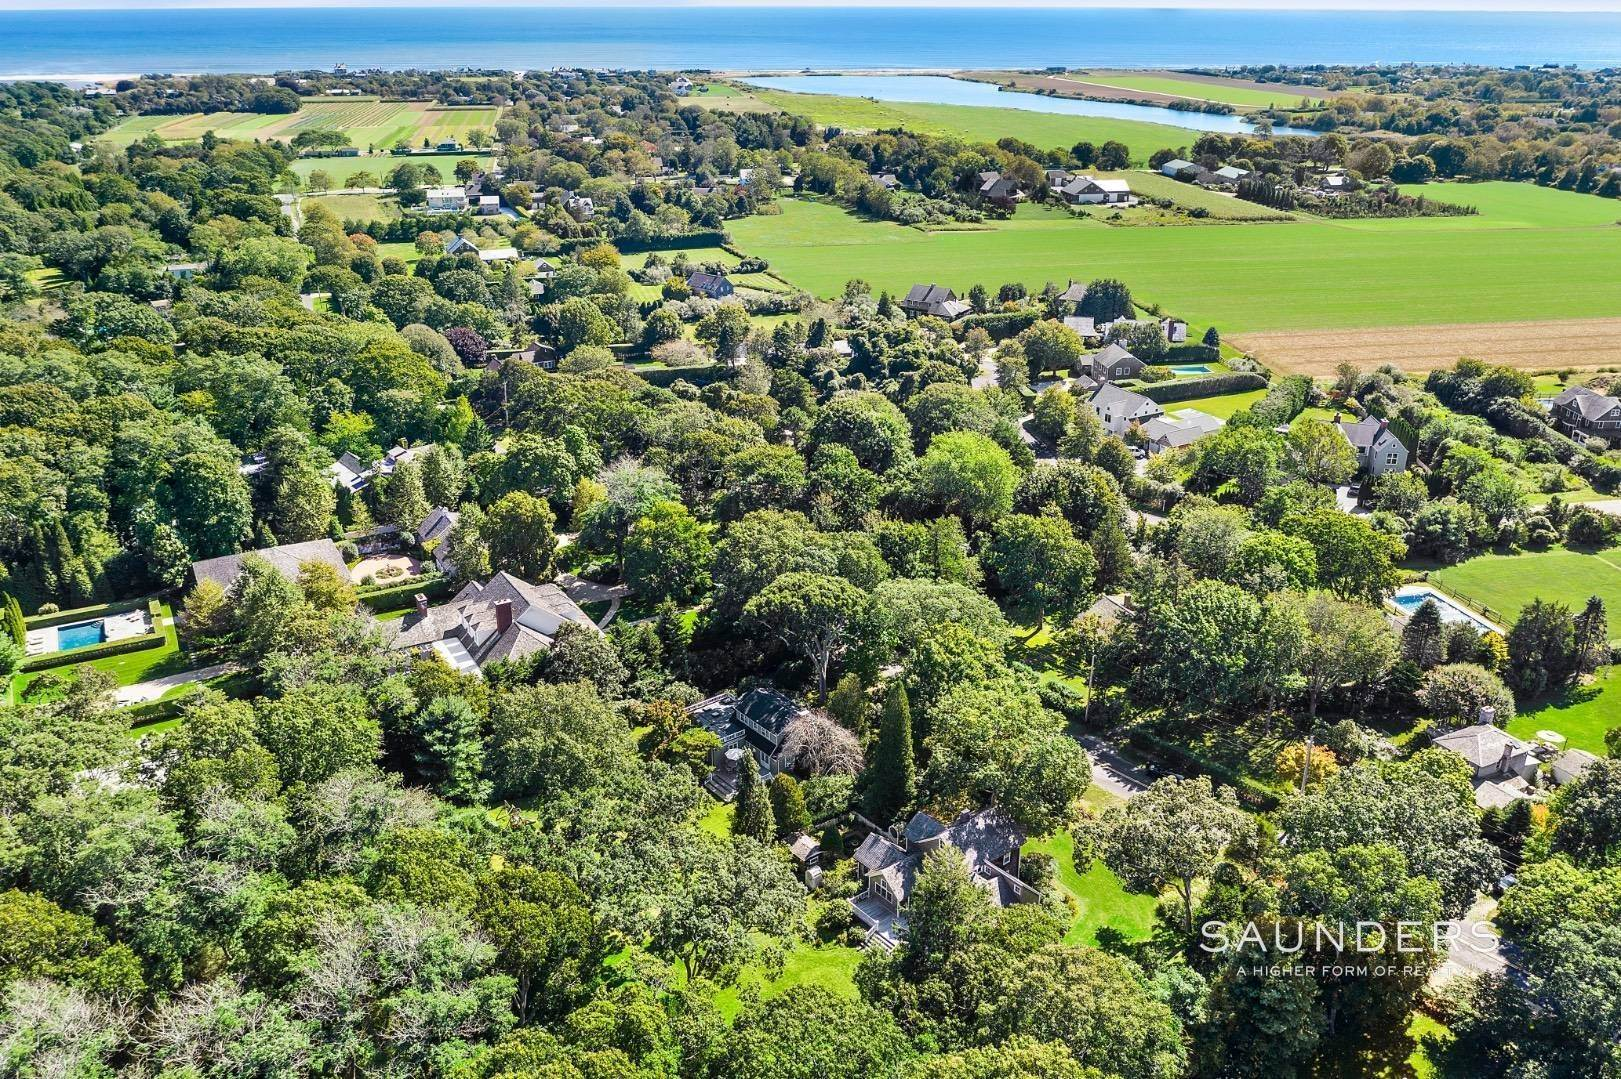 Single Family Homes at Sayres Path 2 Acre Opportunity 129 Sayres Path, Wainscott, East Hampton Town, NY 11937